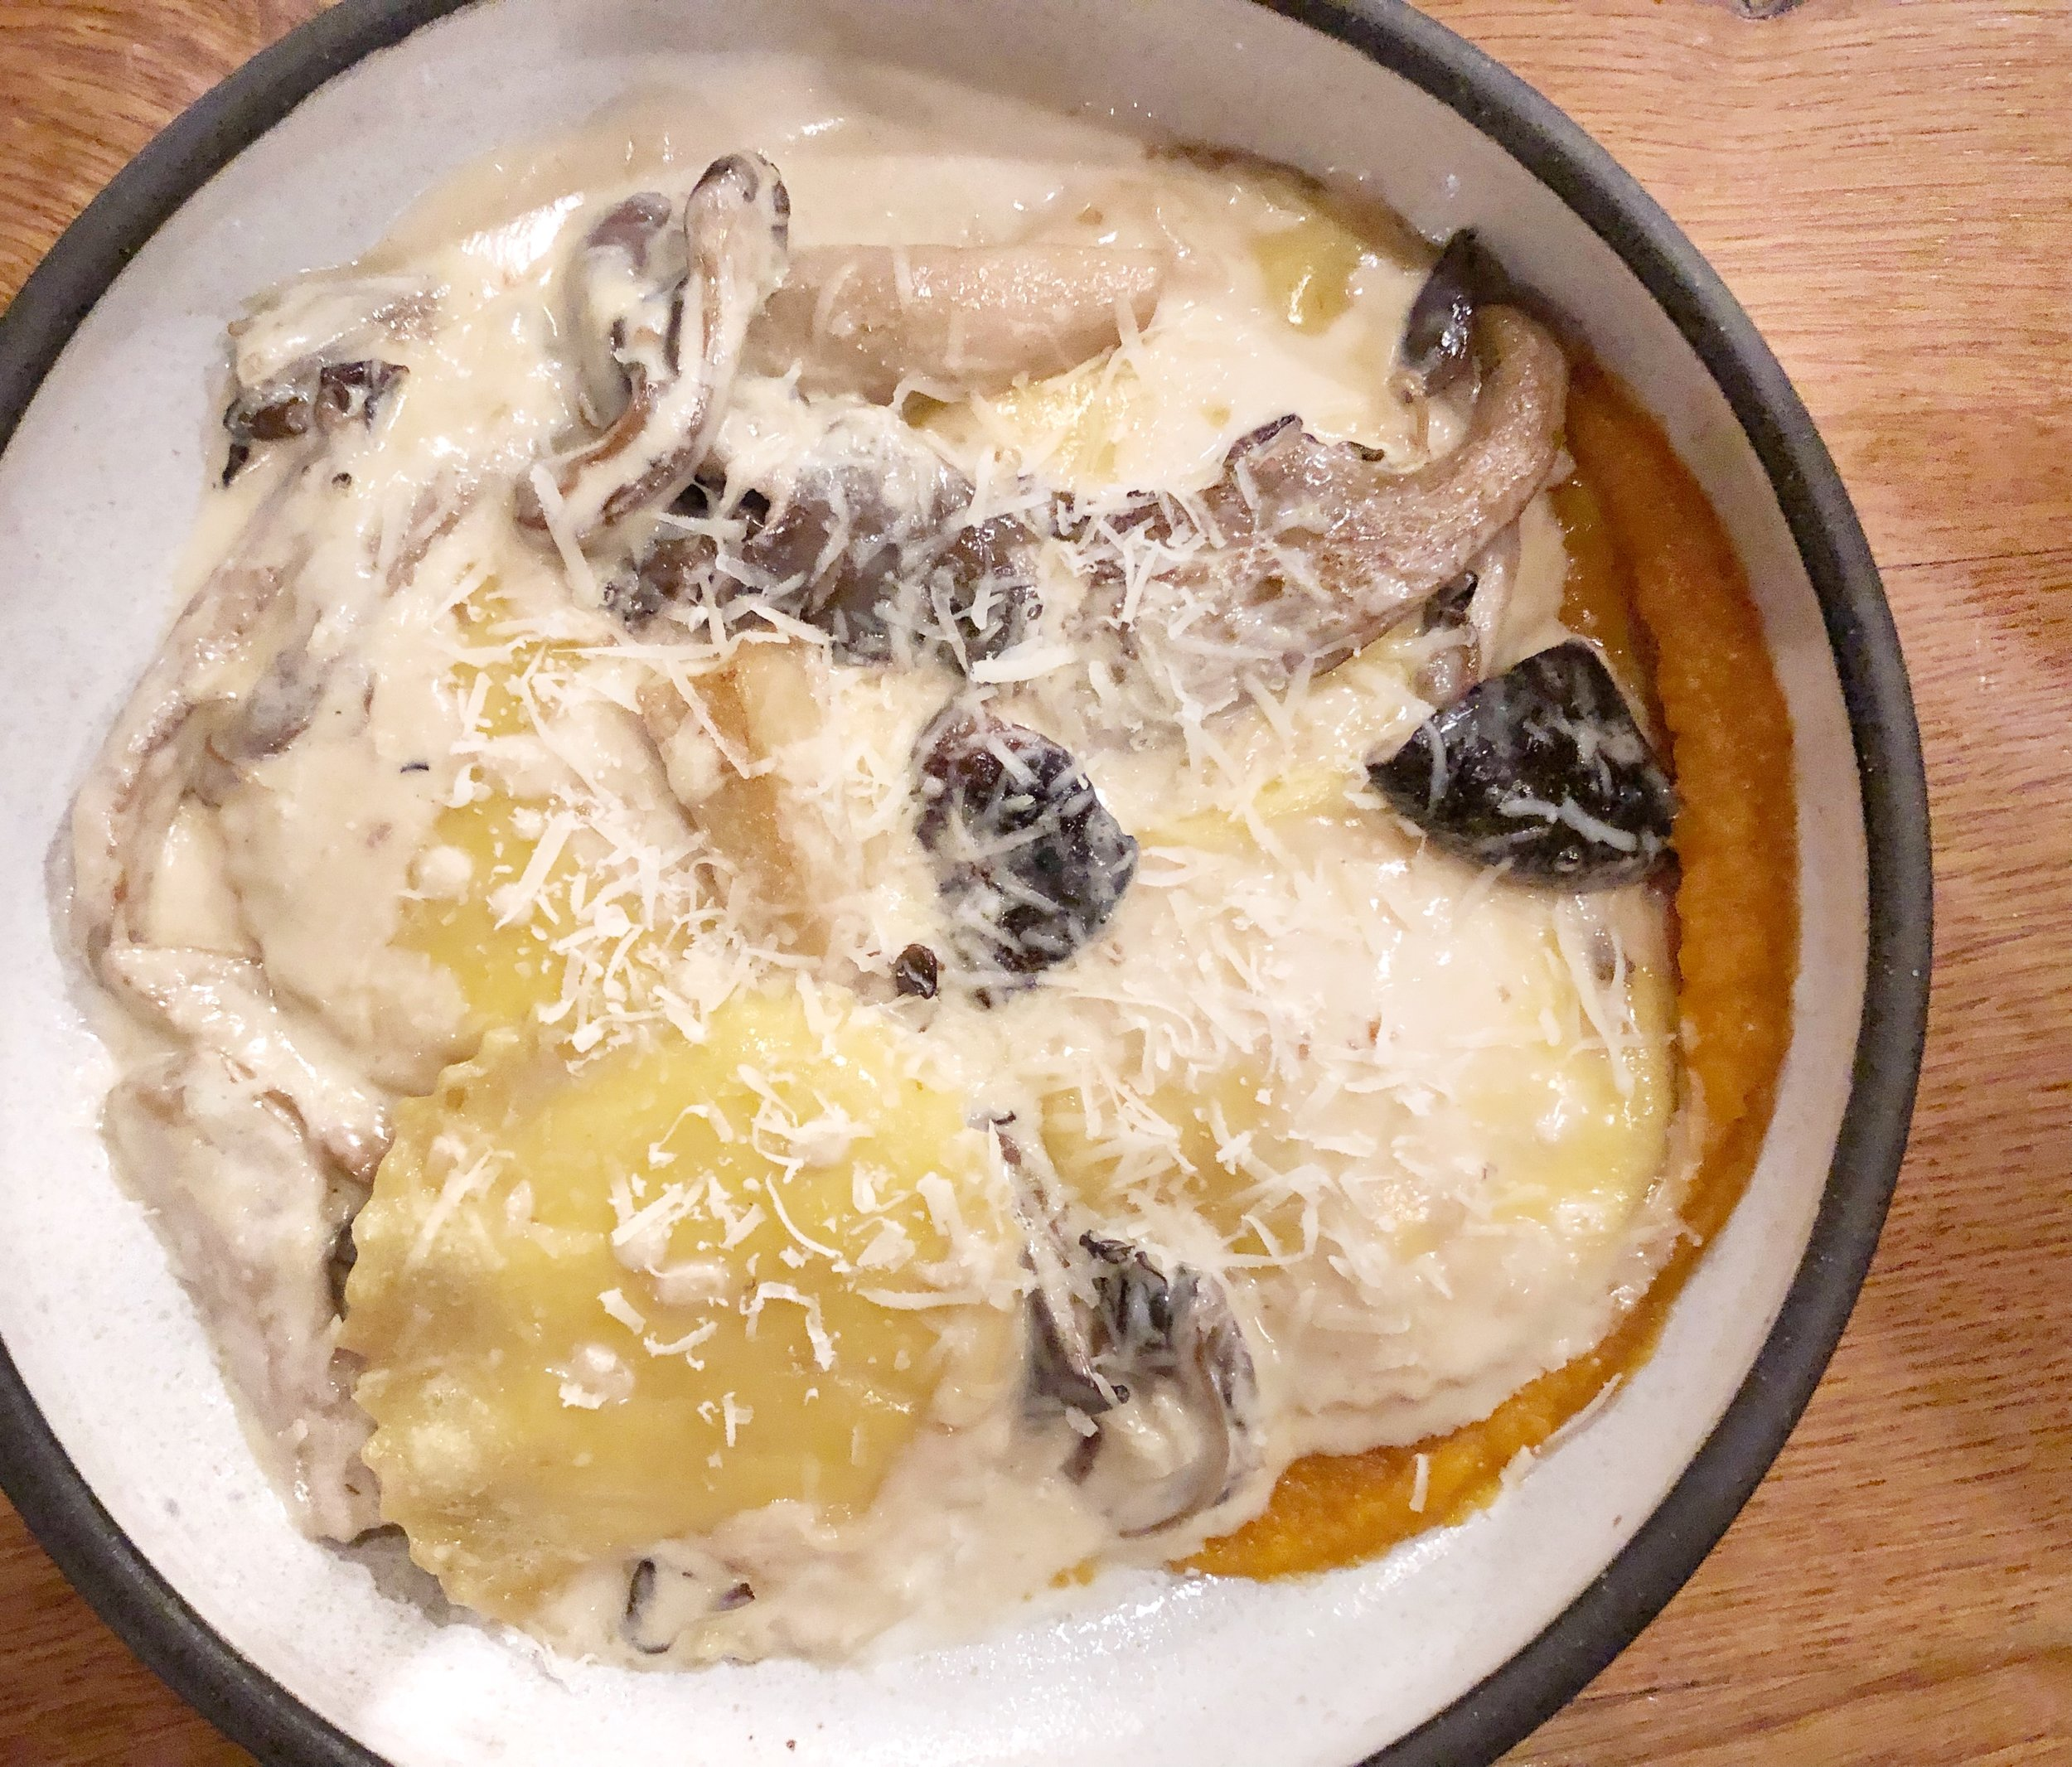 Ricotta Stuffed Ravioli - With mushrooms & squashLittle pillows of flavor perfection. The sweet squash purée added such a lovely dimension to the mushrooms and cream sauce.